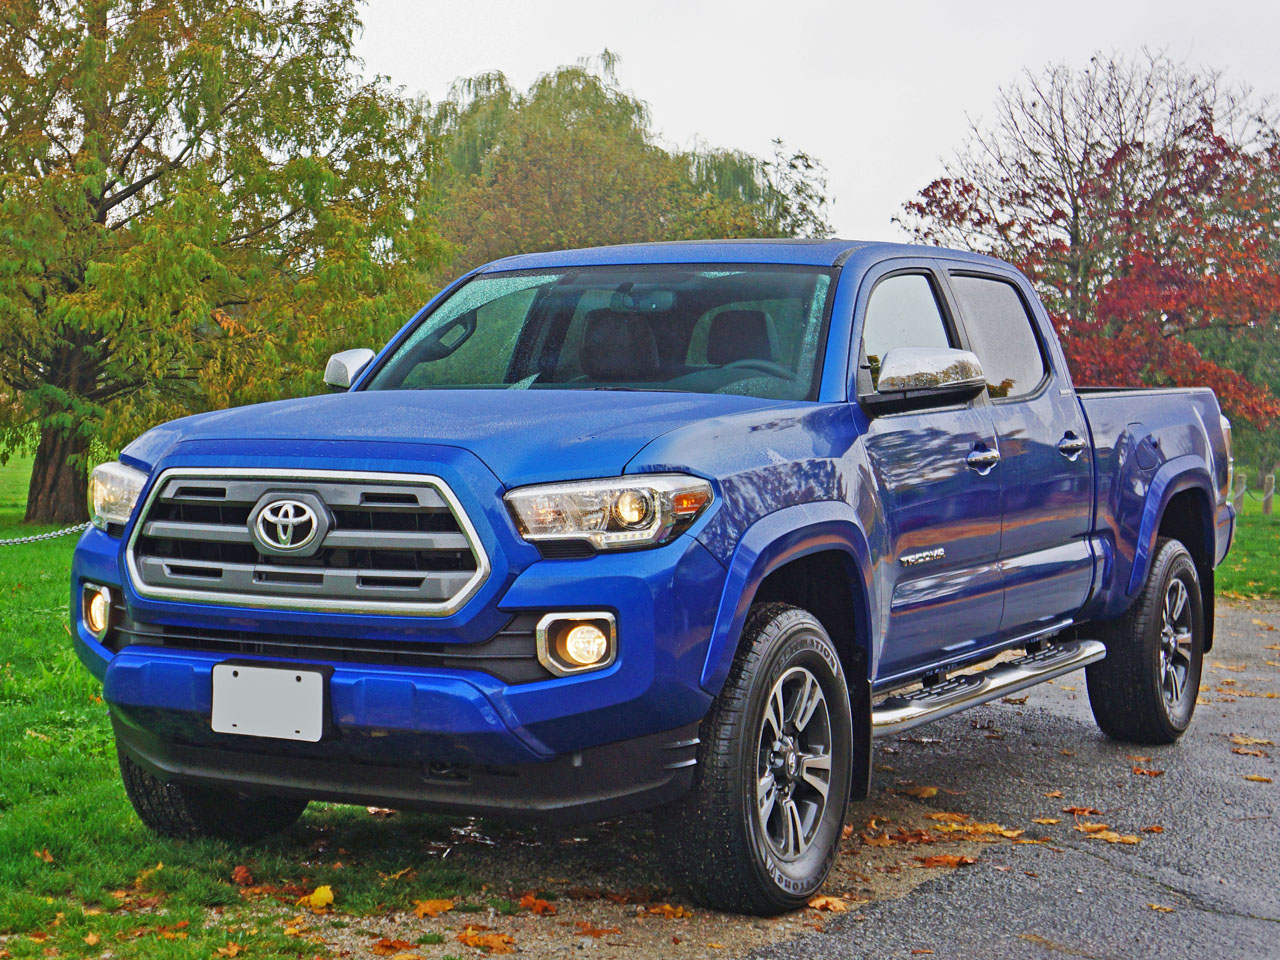 2016 toyota tacoma 4x4 double cab v6 limited road test review carcostcanada. Black Bedroom Furniture Sets. Home Design Ideas